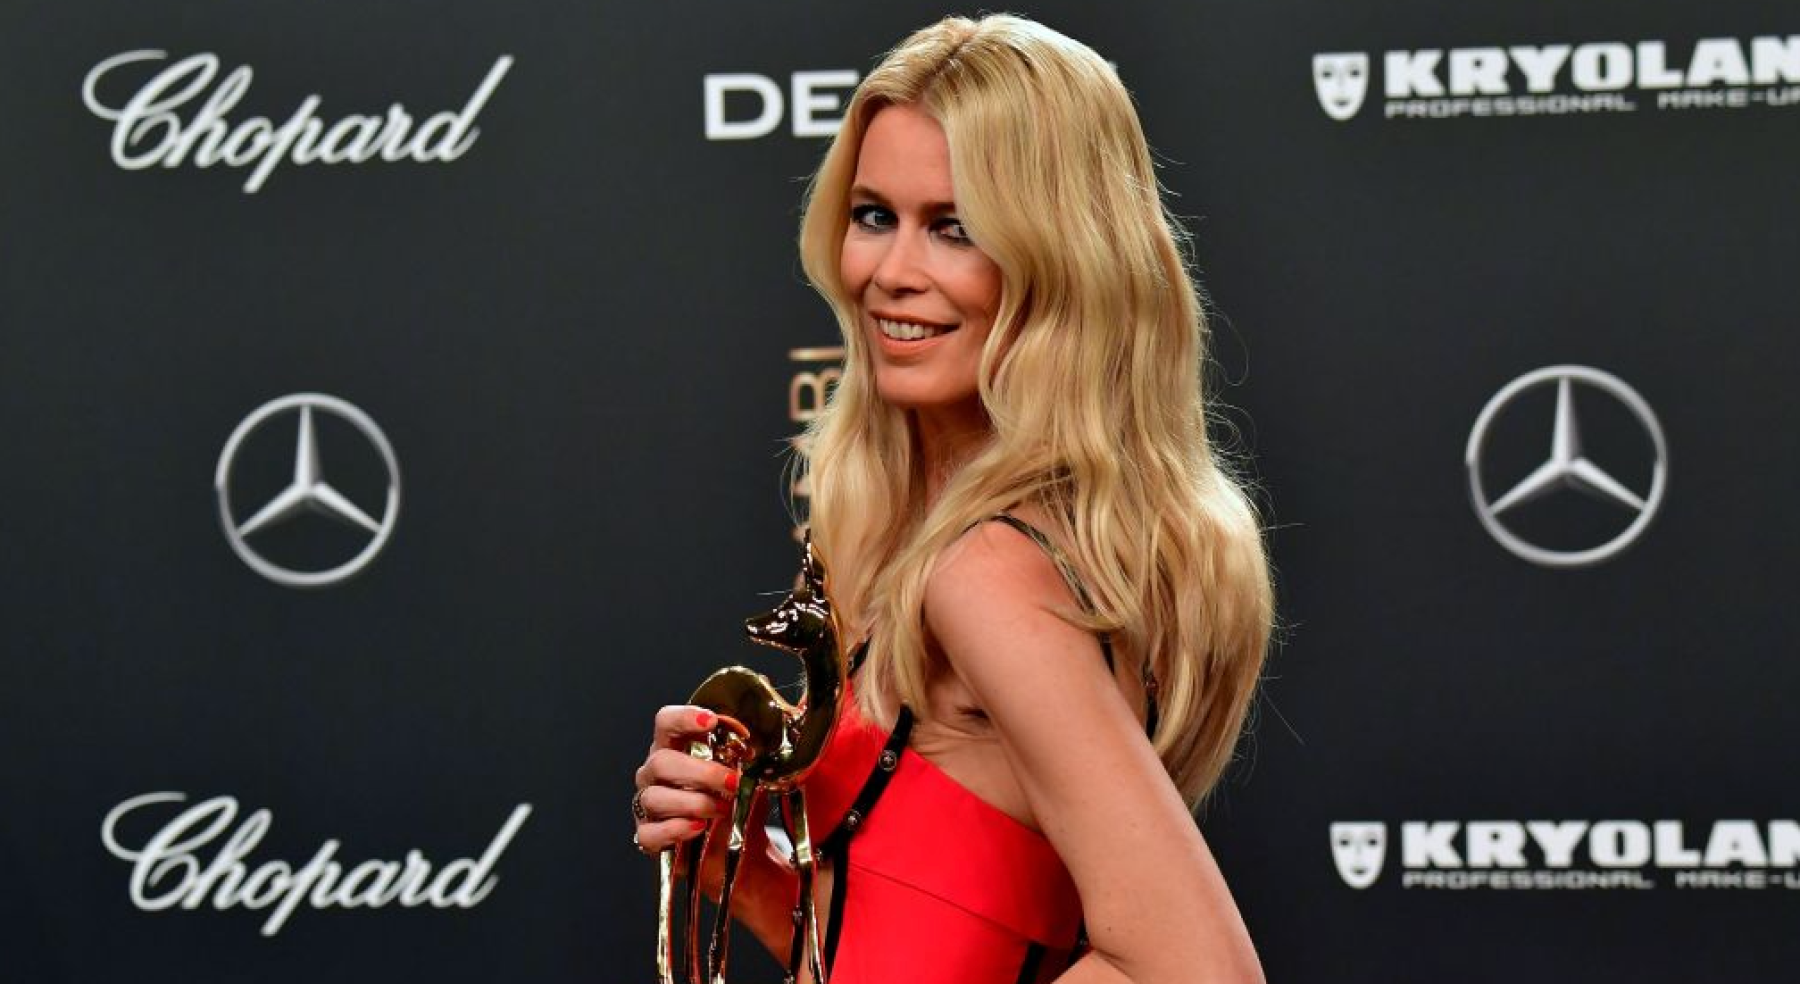 BERLIN, GERMANY - NOVEMBER 16: Claudia Schiffer during the Bambi Awards 2017 at Stage Theater on November 16, 2017 in Berlin, Germany. (Photo by Chris Palme/Getty Images)